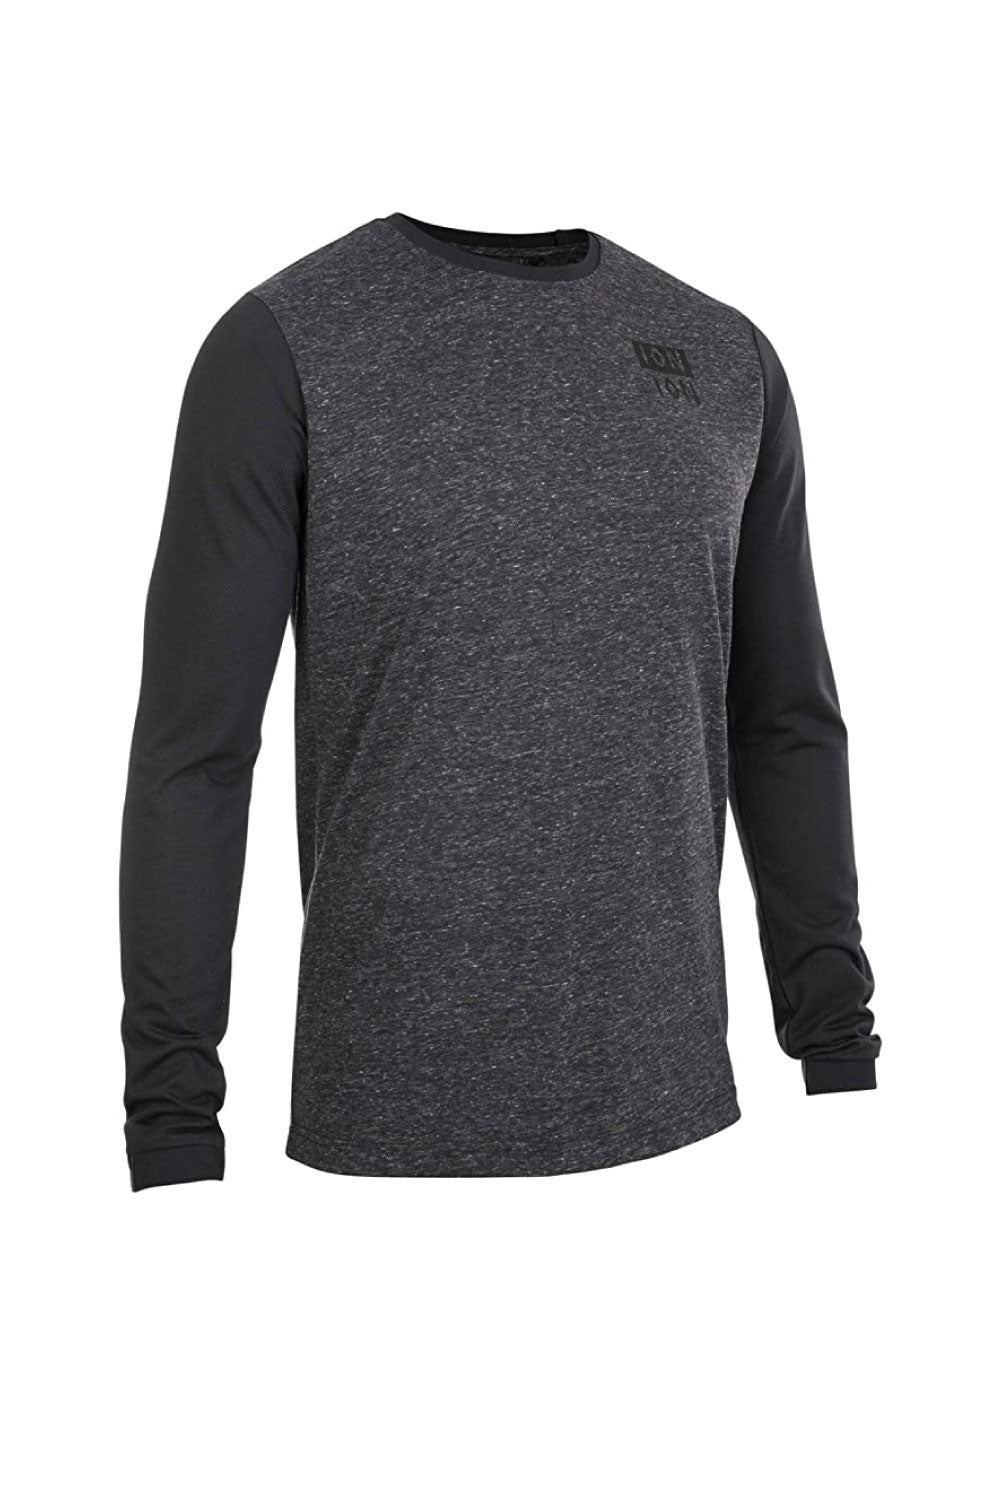 ION Mens Seek Long Sleeve MTB Jersey